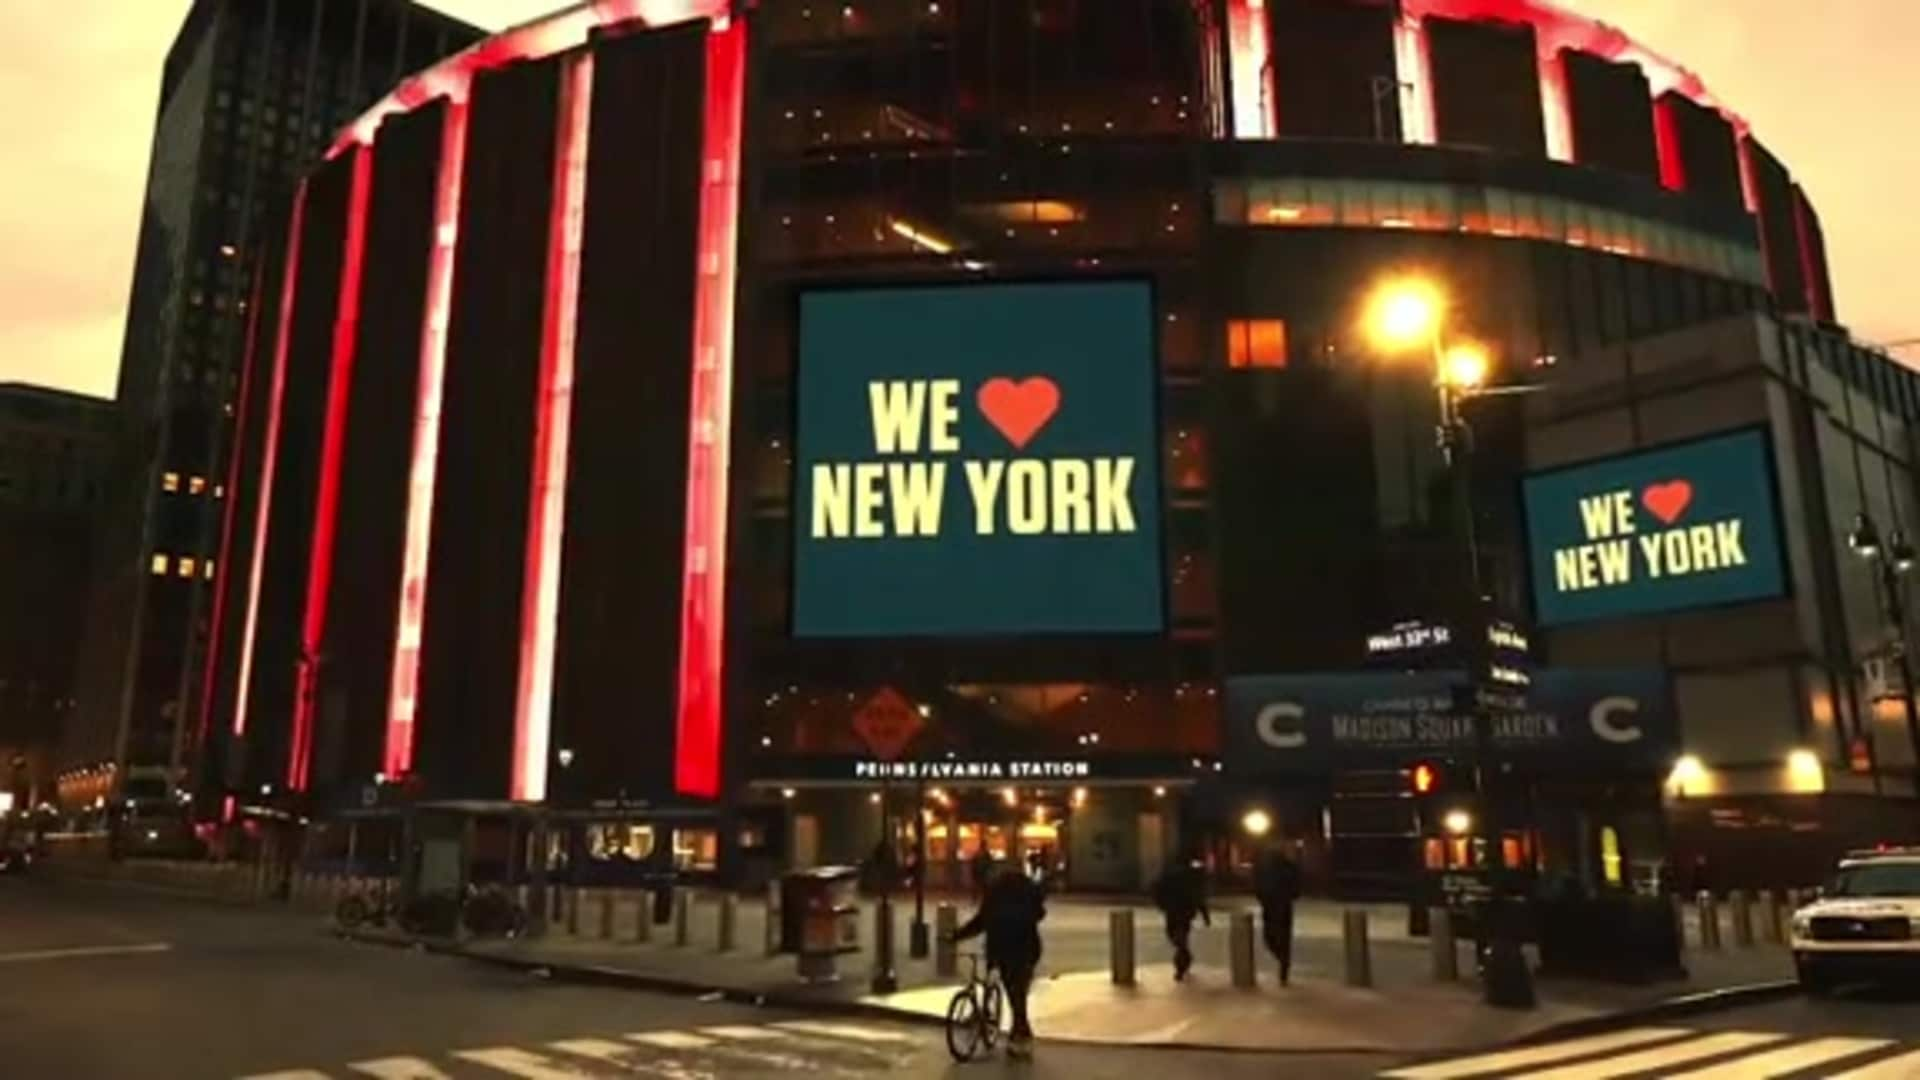 Clapping for Our City | Thank You, New York Frontliners